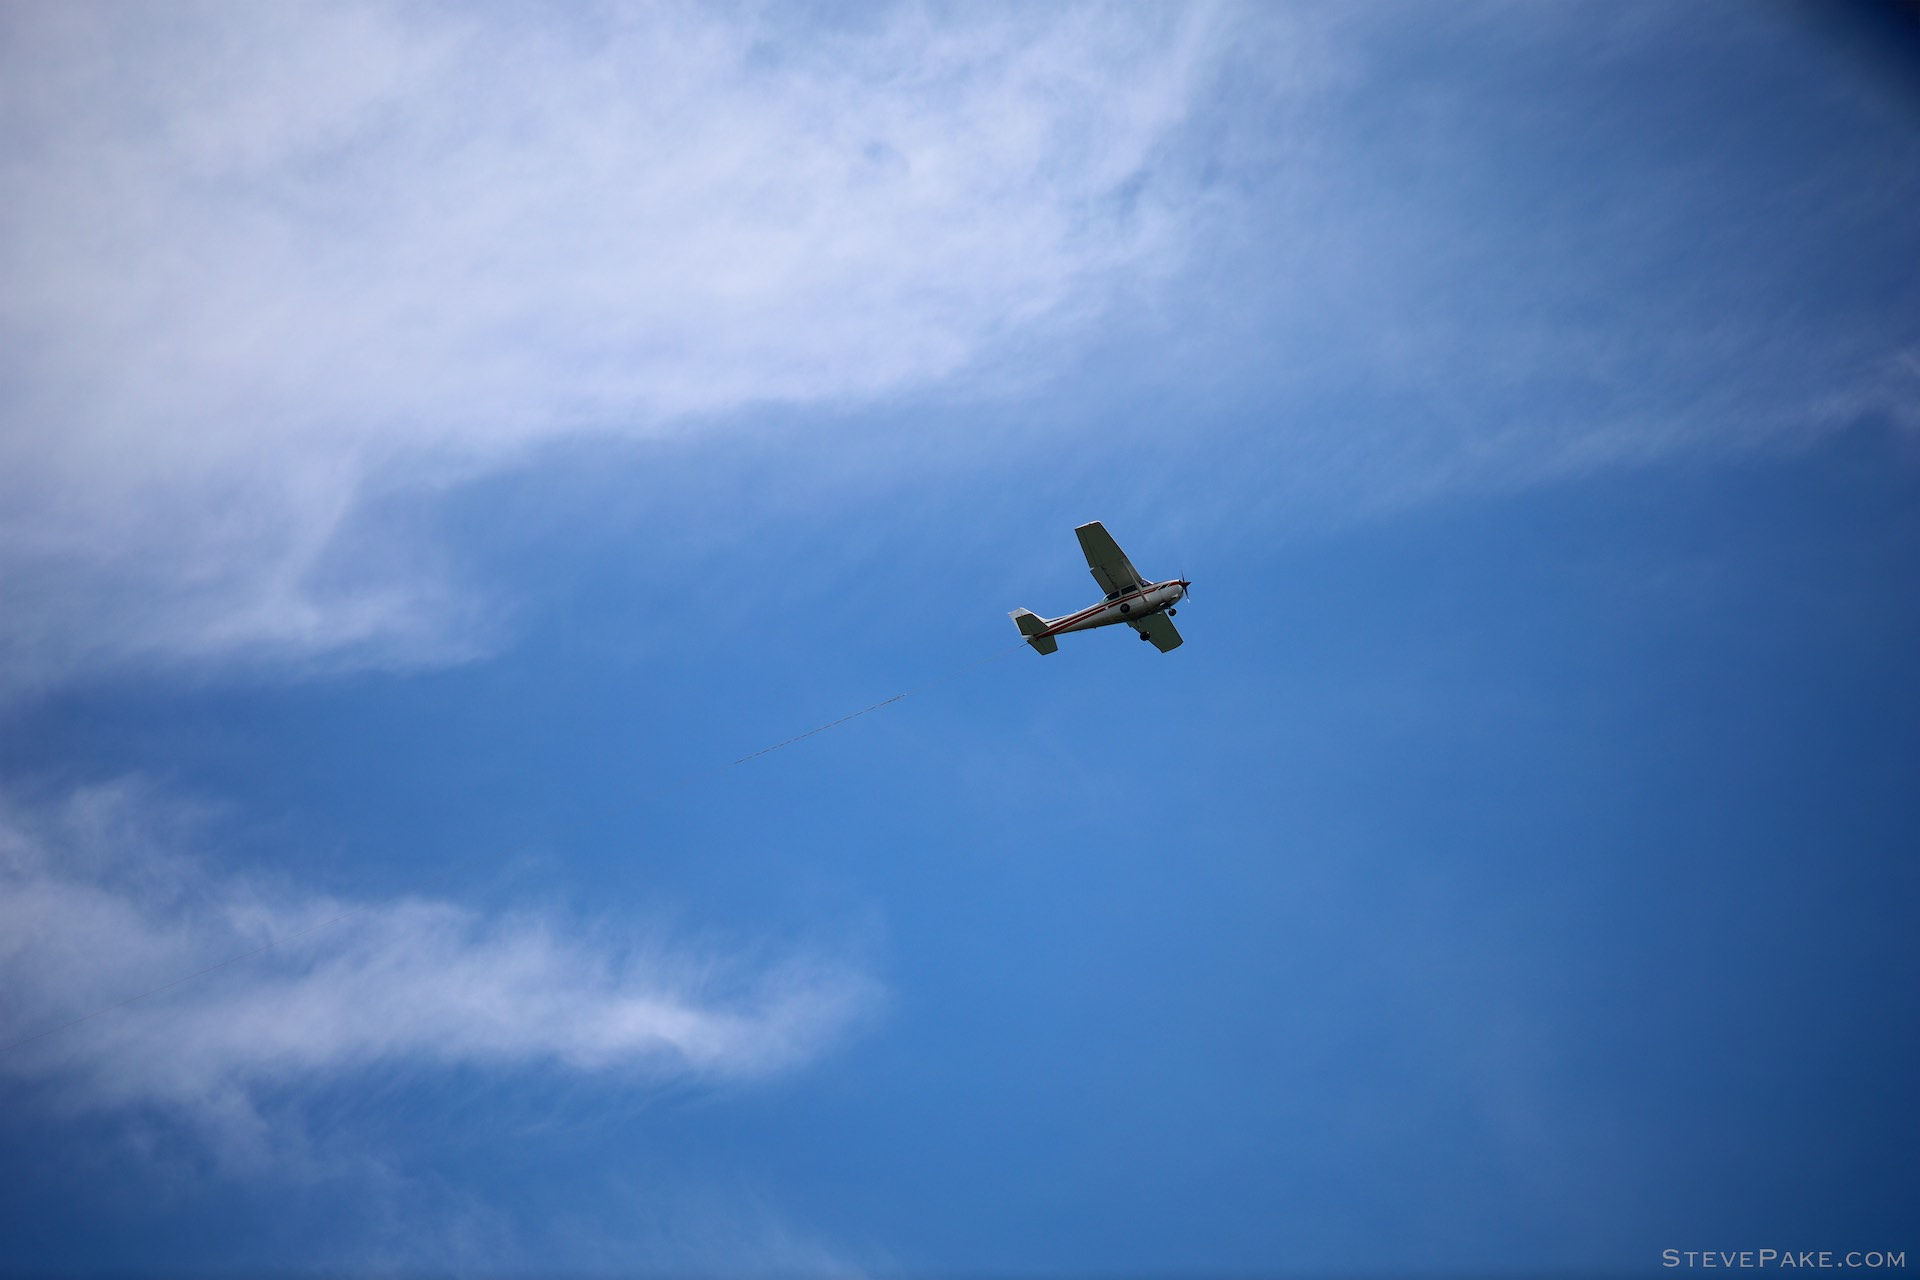 Banner tow plane at 135mm and f/2. What you're seeing here is the natural vignetting of the lens.